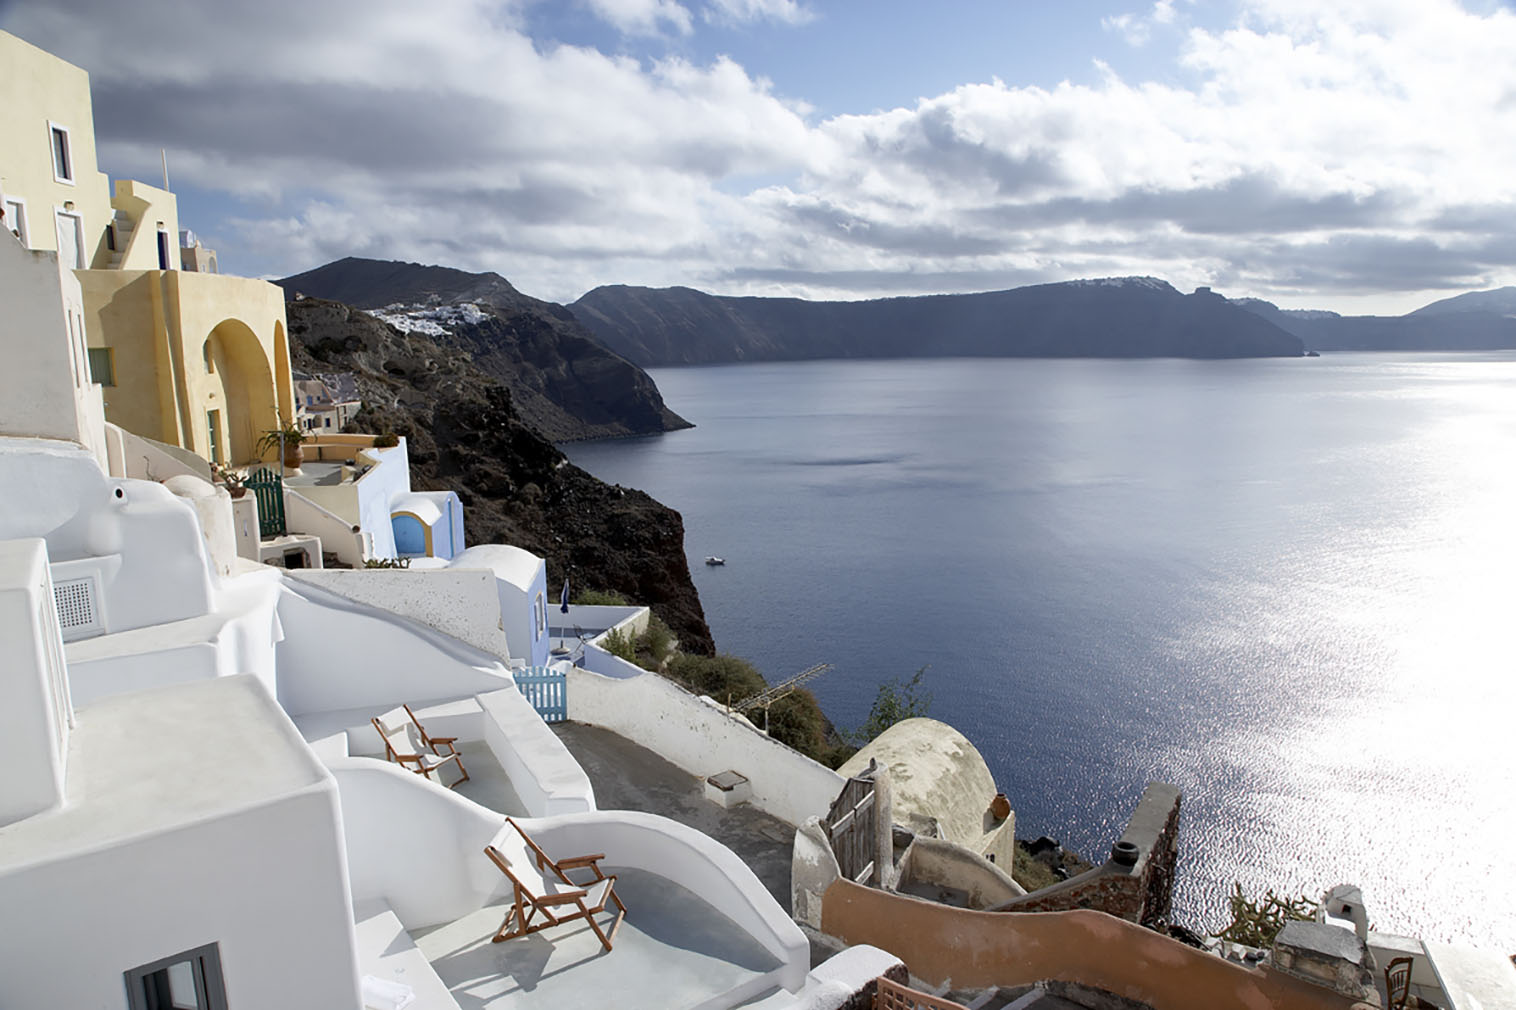 Glistening Cycladic volumes frame sea views at this cliffside Santorini vacation home – now for sale through Welcome Beyond.